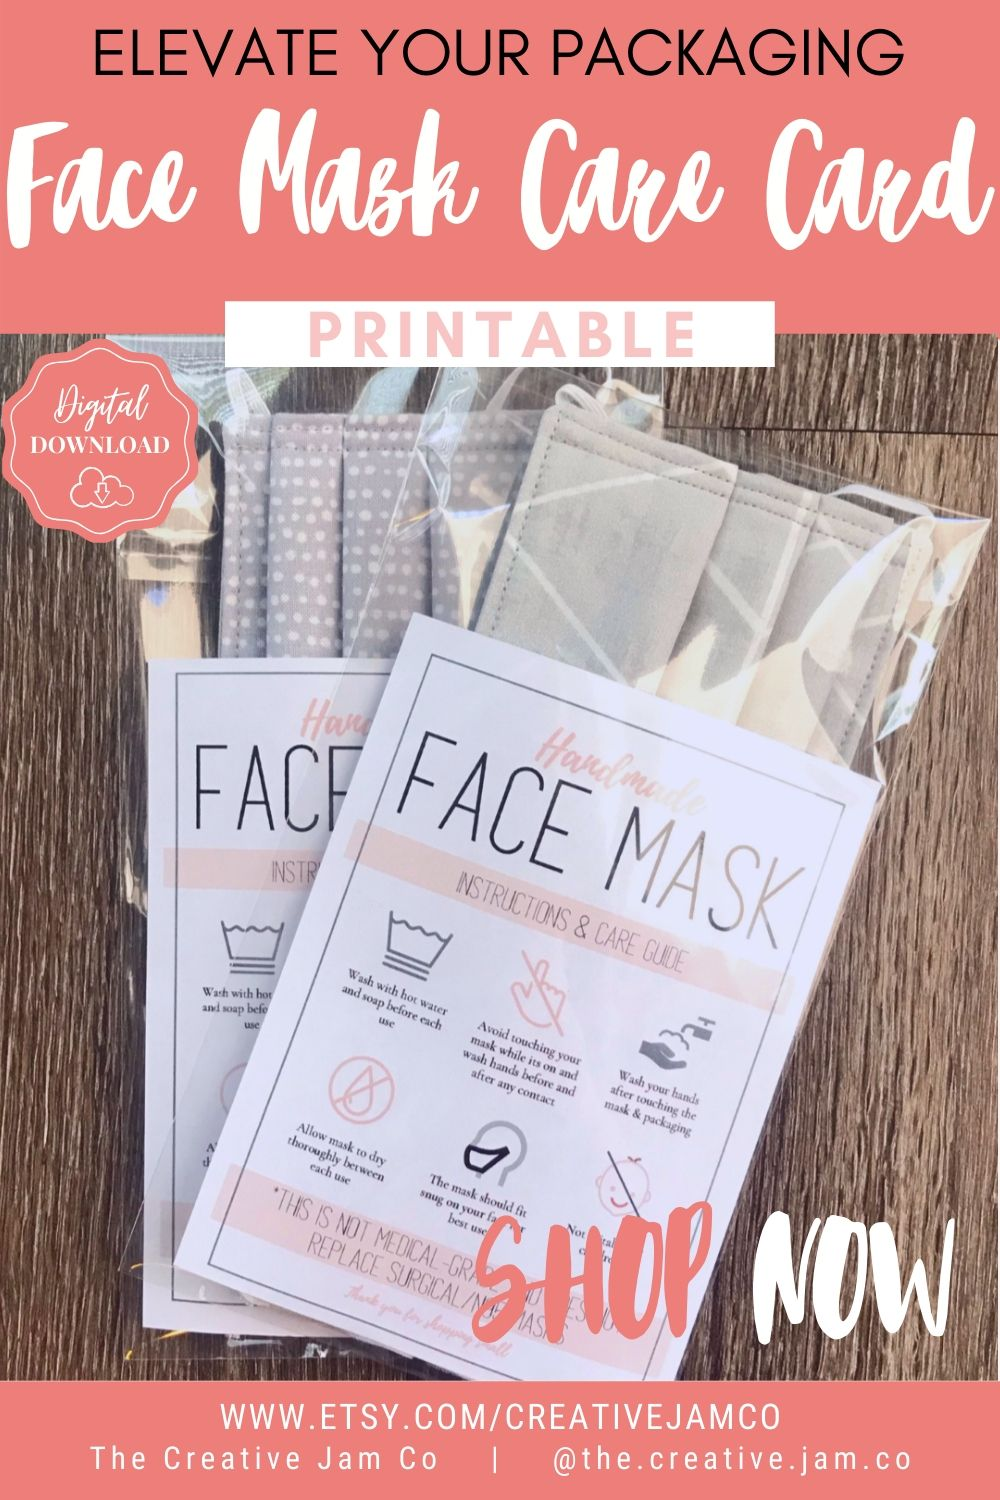 Face Mask Label Care Card How To Handle Order Card Face Mask Printable Instructions Business Labels Face Mask Seller Package Label Tag Business Labels Face Mask Small Business Packaging